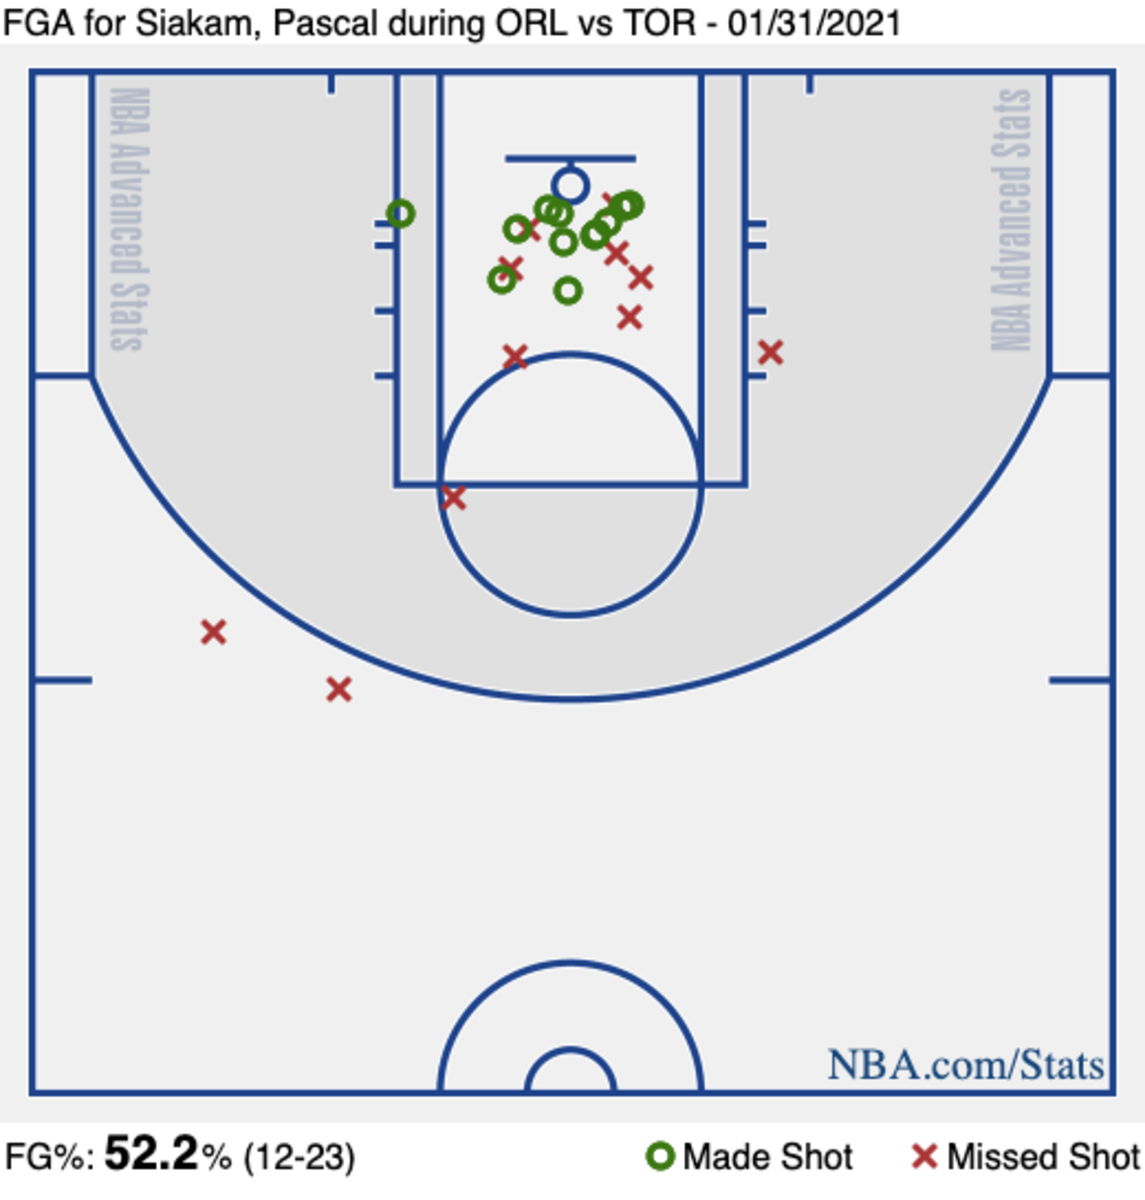 Pascal Siakam's shot chart from Sunday's game against the Orlando Magic